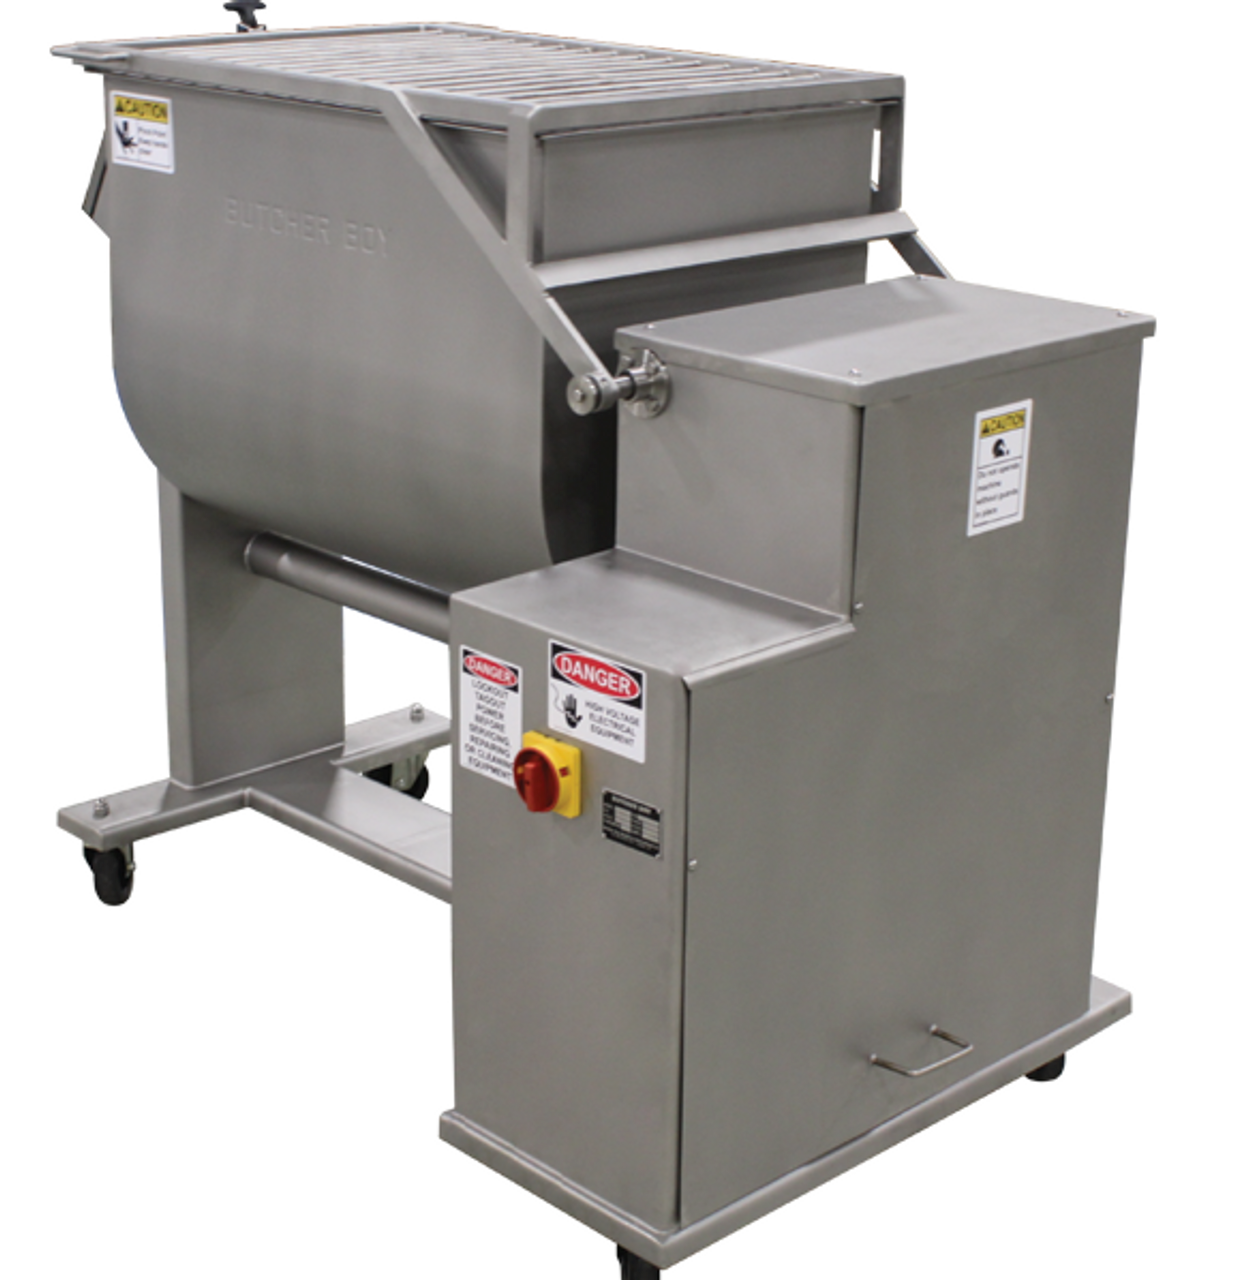 Butcher Boy 250 Single Action Stainless Steel Mixer